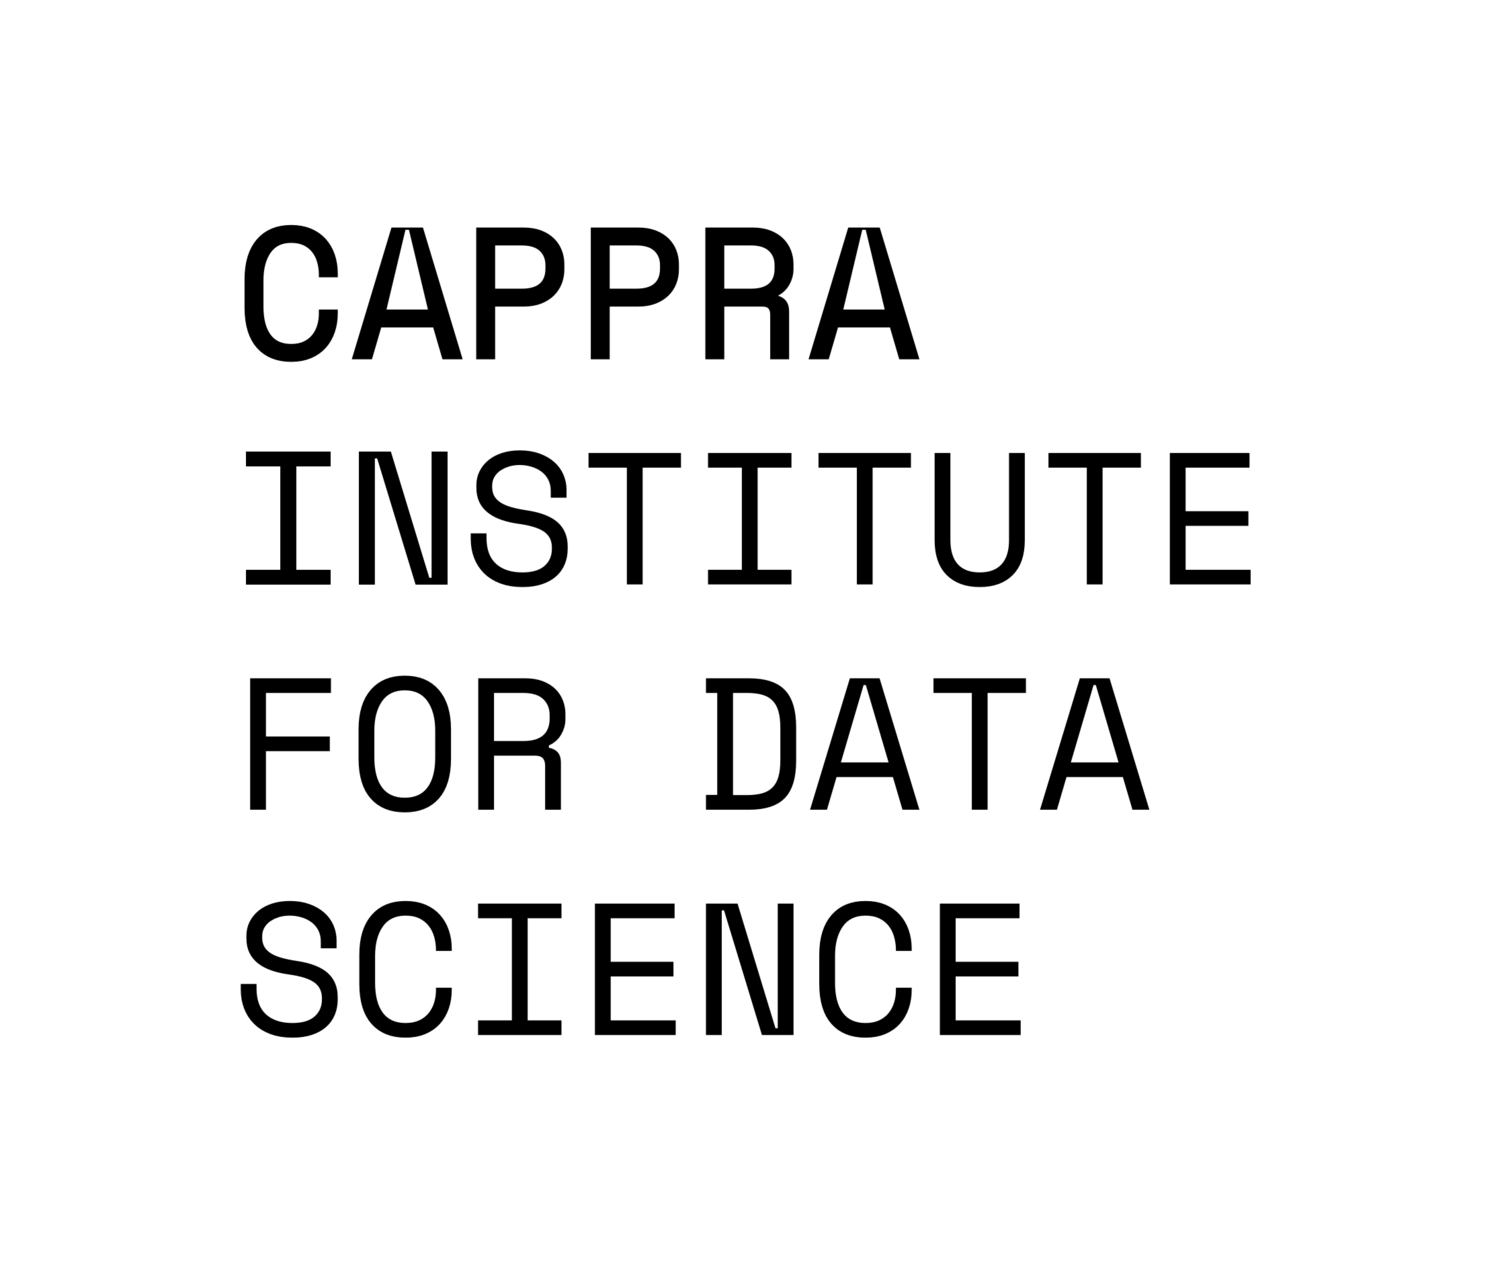 CAPPRA CONSULTING